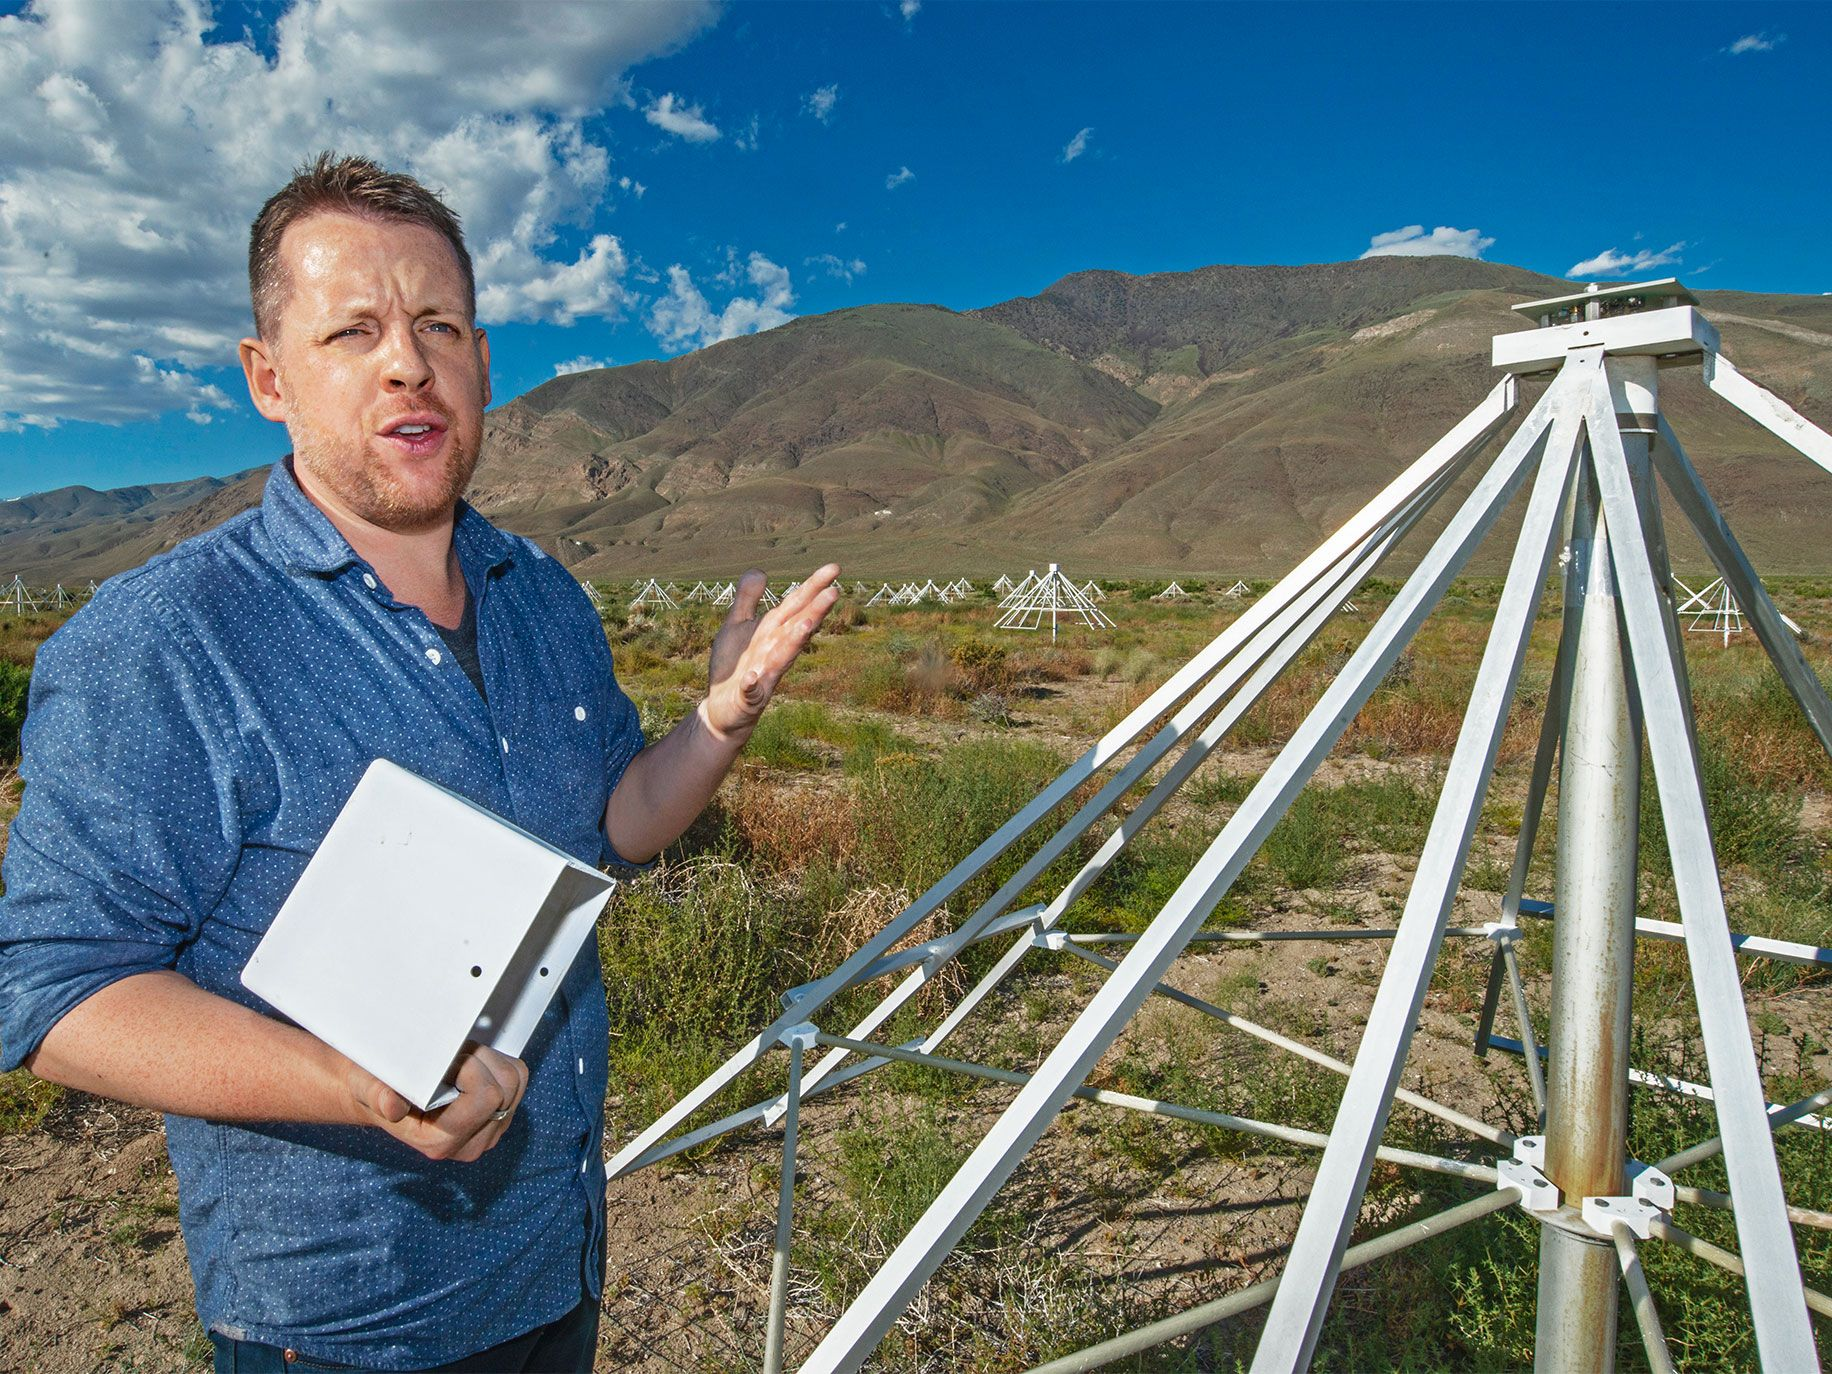 Caltech professor Gregg Hallinan examines the receiver from one of the antennae he designed for the Long Wavelength Array. His team can build an antenna in as little as 15 minutes.